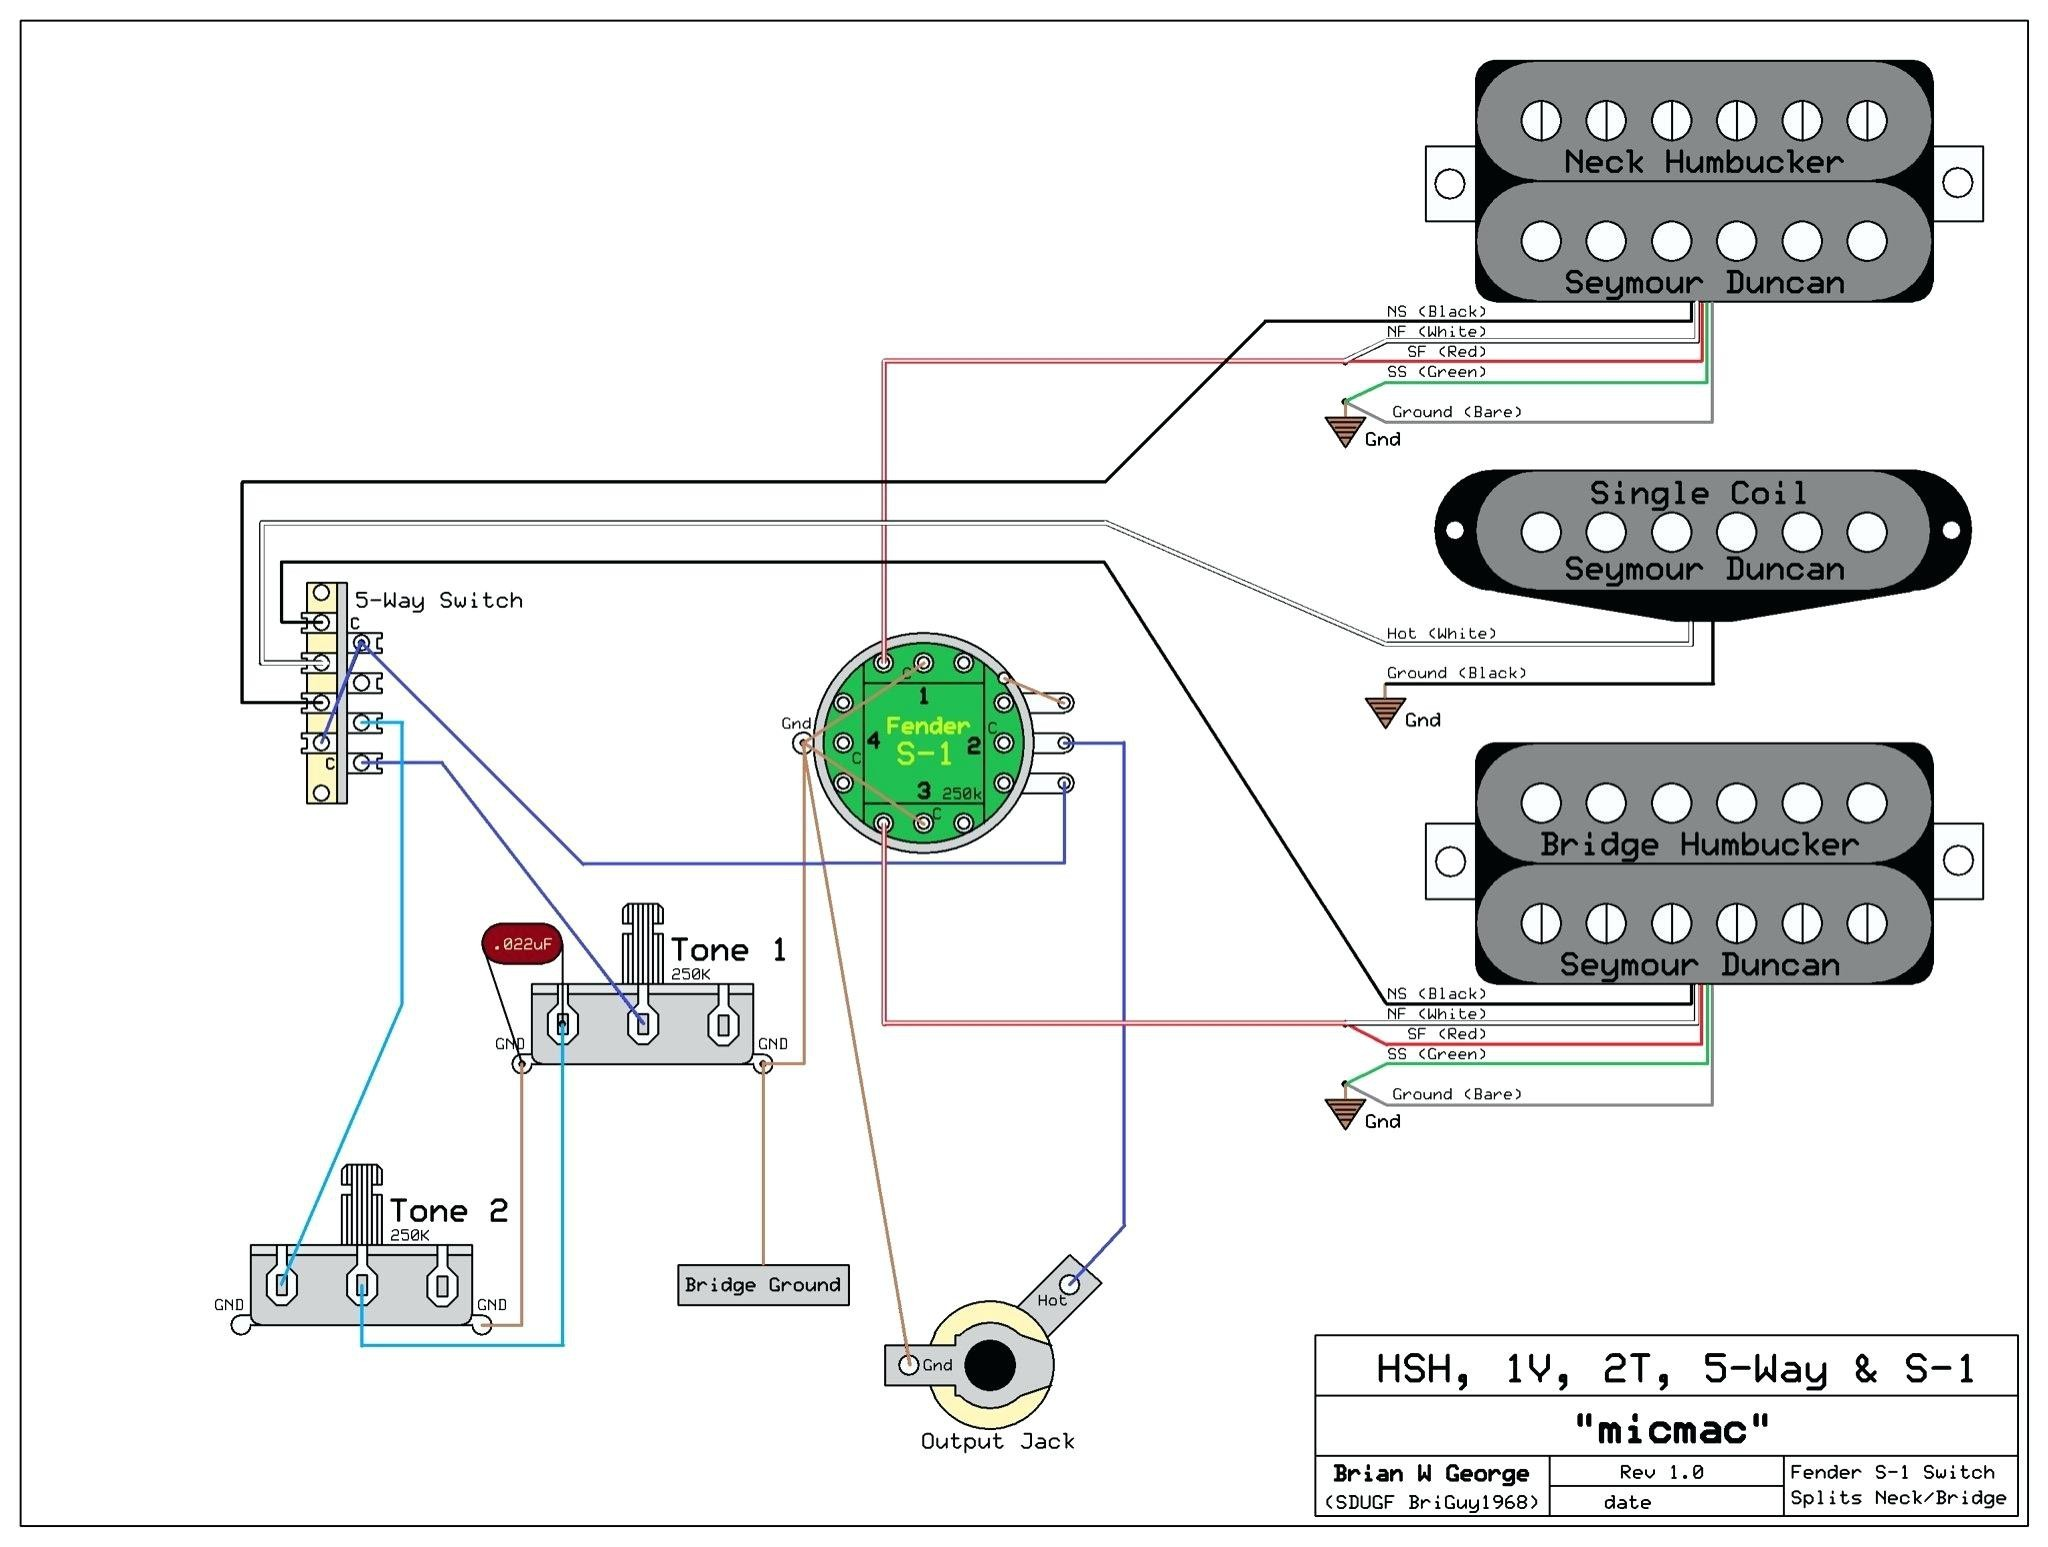 Luxury Epiphone Humbucker Wiring Adornment - Best Images for wiring ...